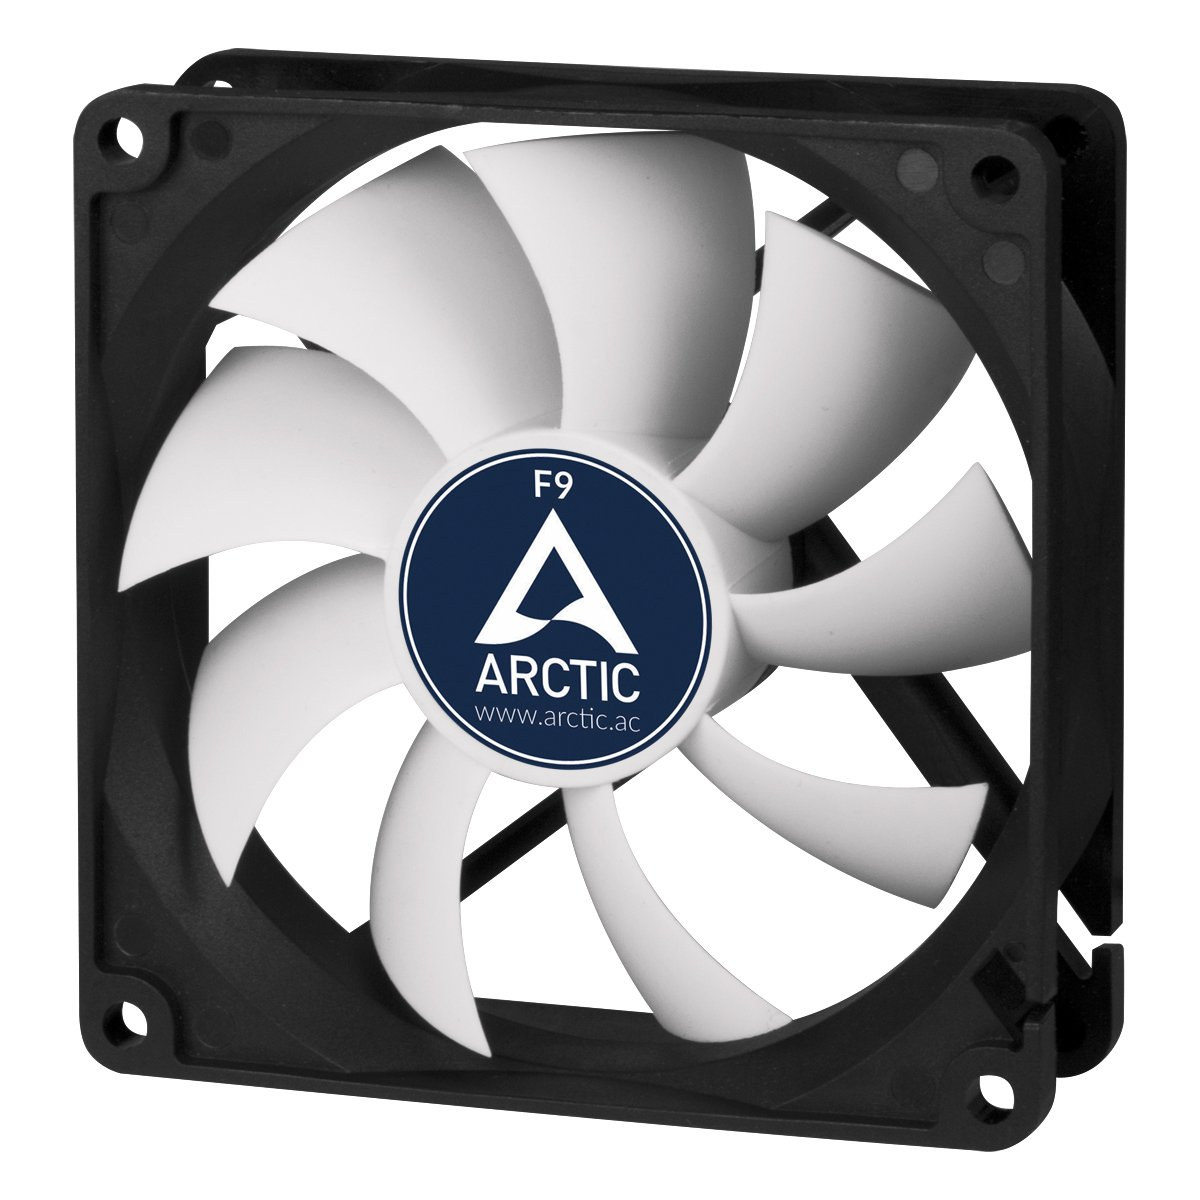 ARCTIC F9-92 mm Standard Low Noise Case Fan - Fluid Dynamic Bearing - Innovative Design